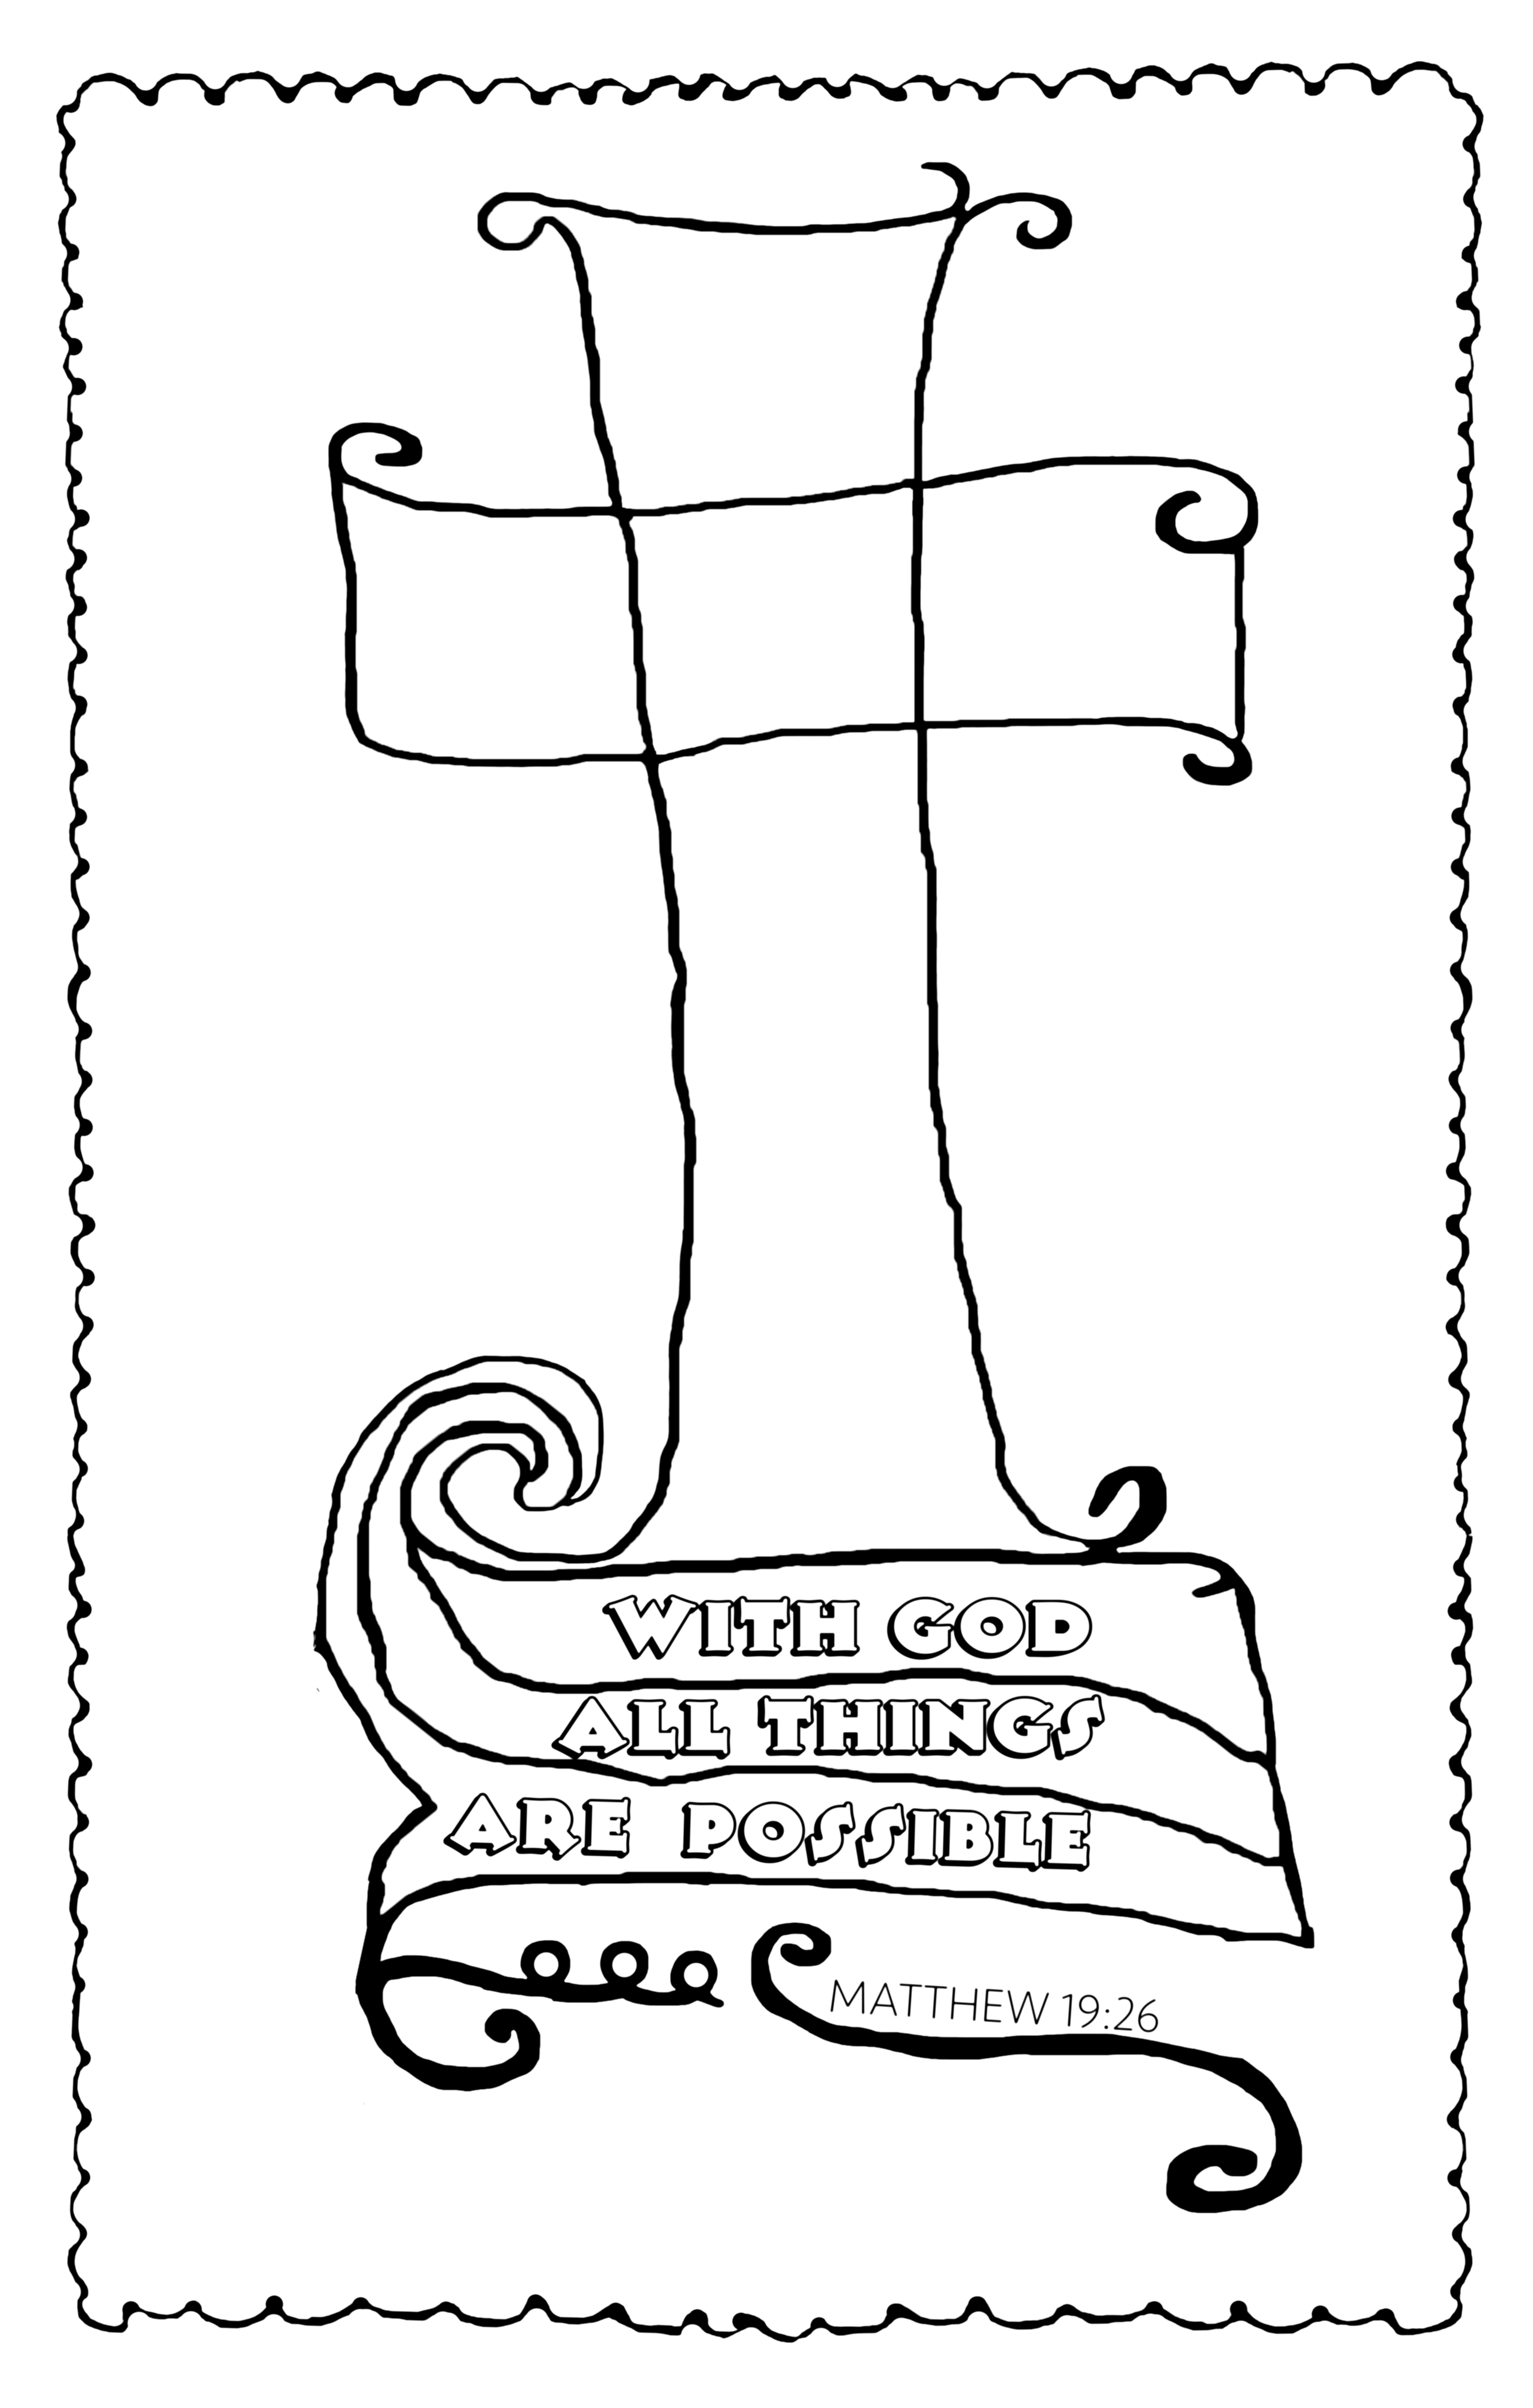 BIBLE JOURNALING_HOLLIE'S DRAWING INTO CB